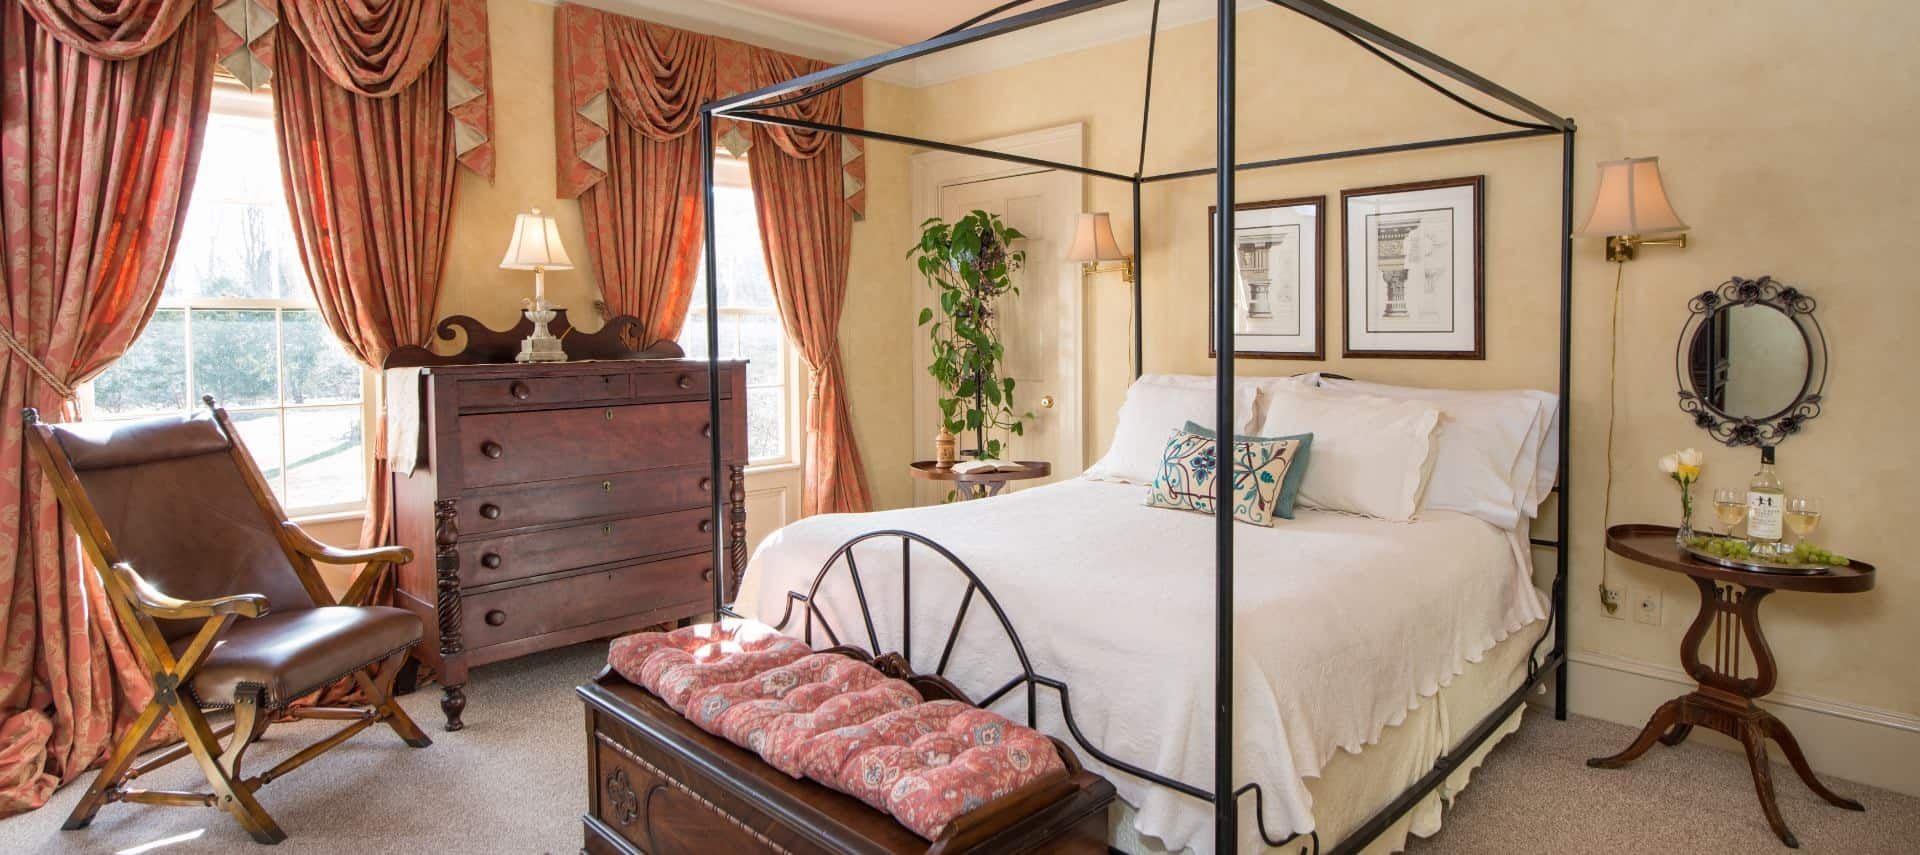 Bedroom with dark wooden furniture, rod iron bed with white bedding, wooden nightstands, yellow walls, light colored carpeting, and salmon colored drapery